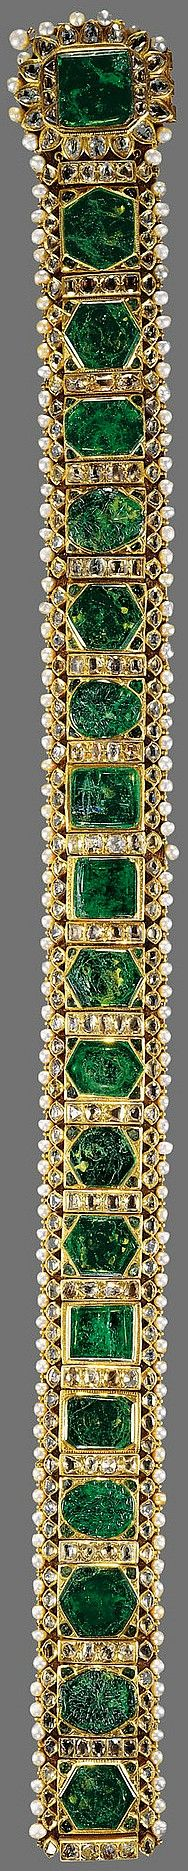 Emerald girdle of Maharajah Sher Singh, India, c. 1840, emeralds, diamonds, pearls, gold, fabric and silver-gilt thread, 6.9 x 83.5 cm, Made for Maharajah Sher Singh (the emeralds inherited from Ranjit Singh), c.1840; taken (as part of the Lahore Treasury) by the Directors of the East India Company, 1849; by whom given to Queen Victoria in 1851